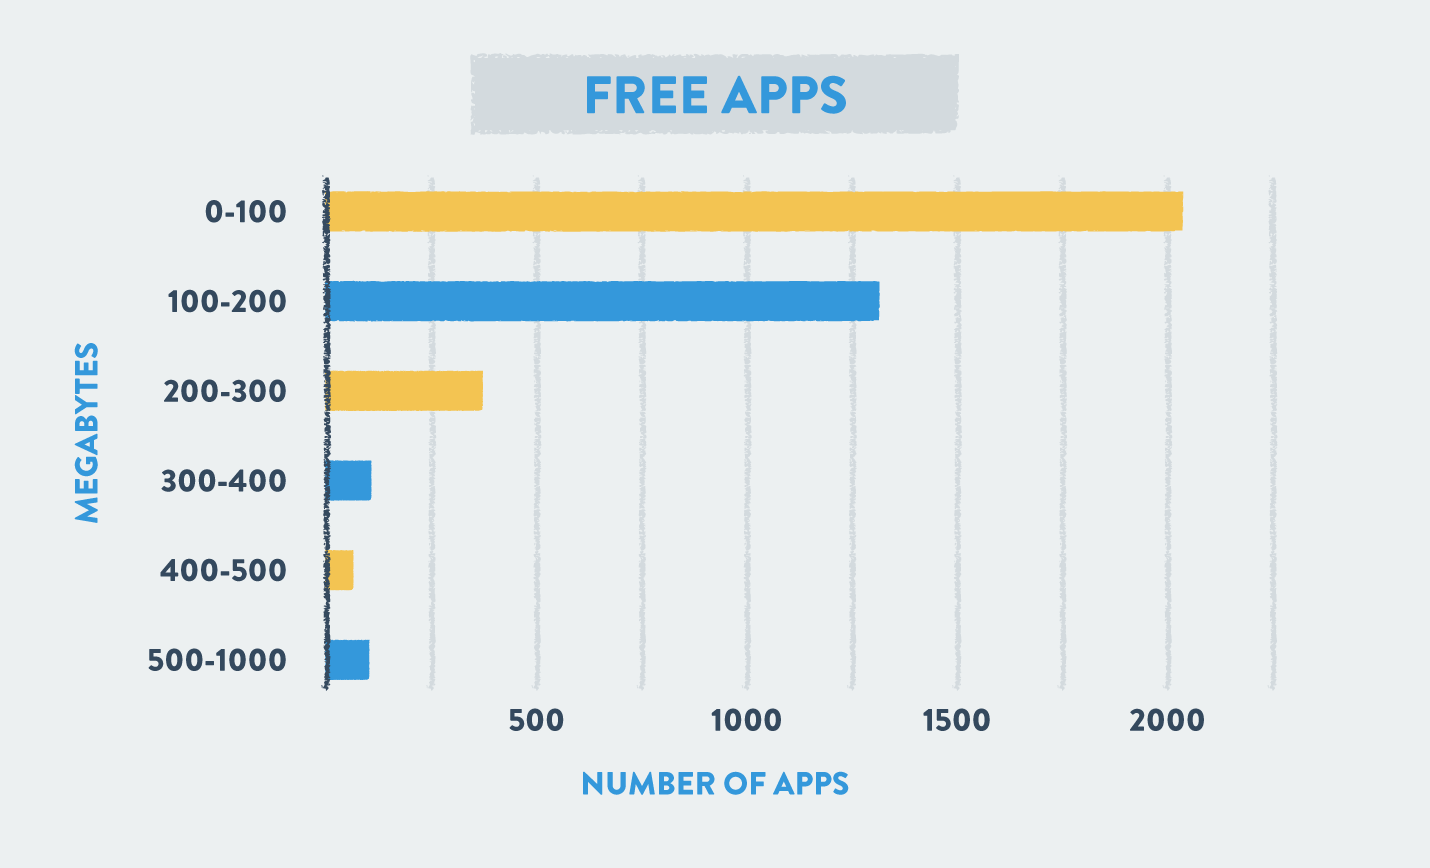 size of free apps by megabytes